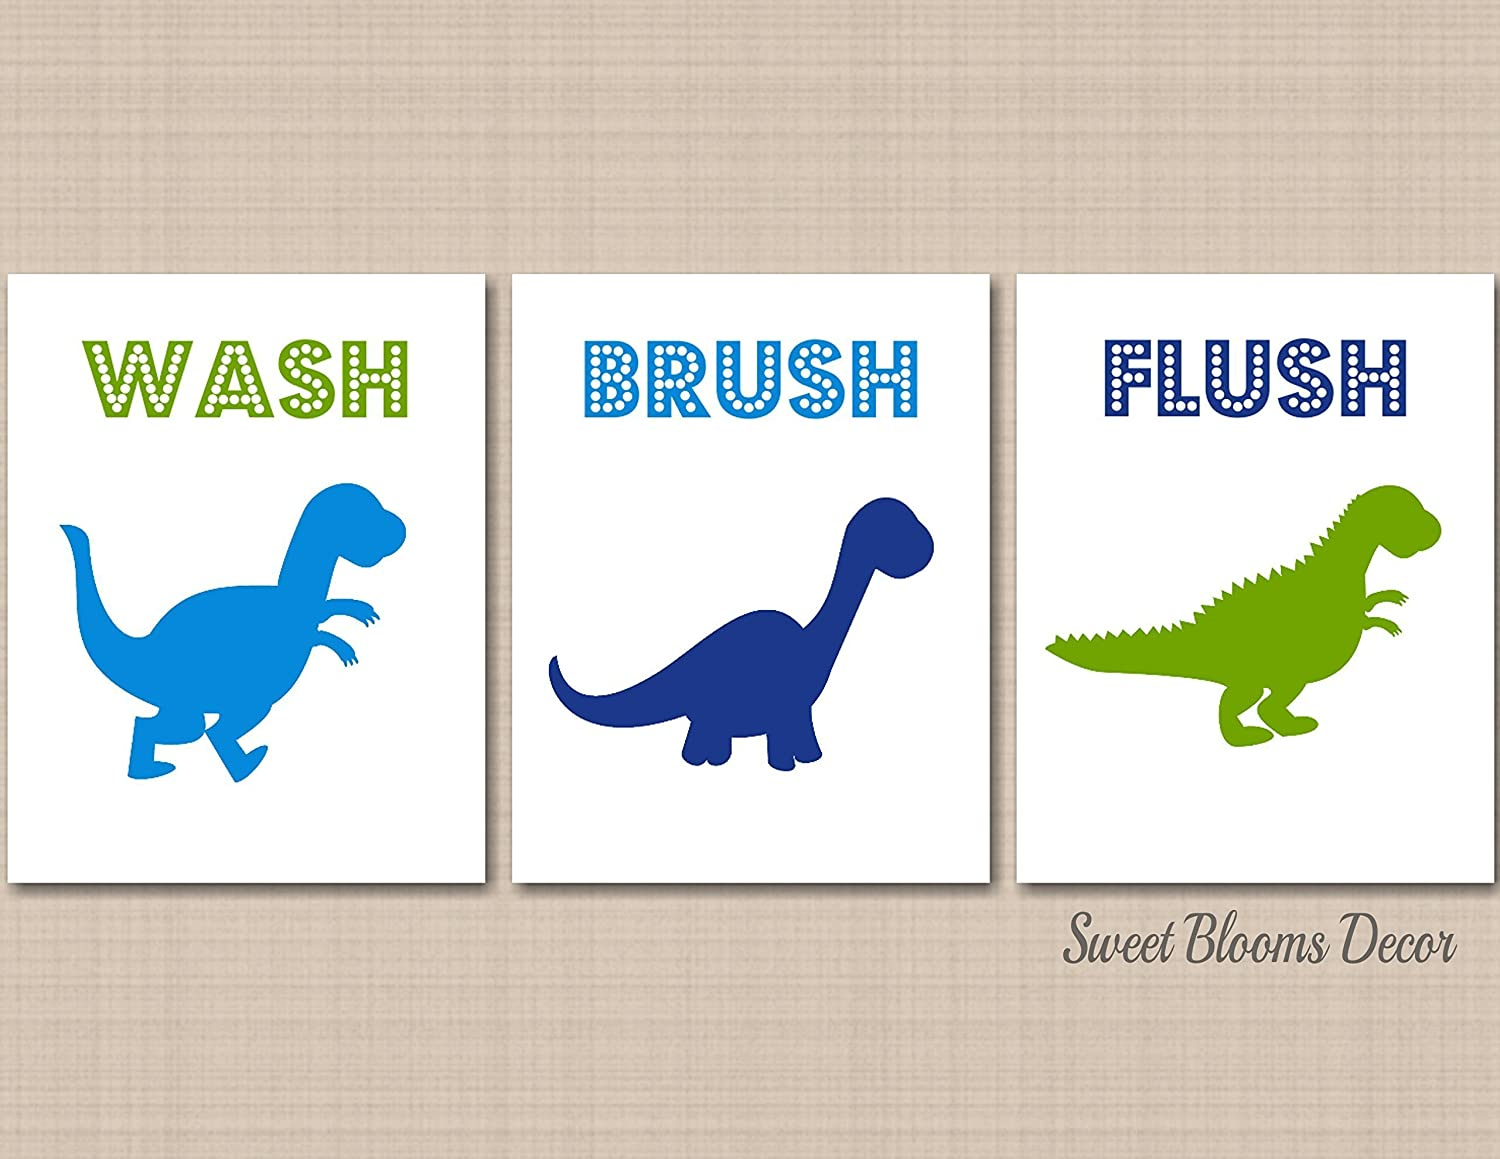 B115 Not Canvas Dinosaur Bathroom Wall Art Dino Park Bath Dinosaur Bathroom Decor Blue Green Dinosaur Bathroom Wall Art Dinosaur Wall Art Unframed Set Of 3 Prints Home Decor Home Kitchen